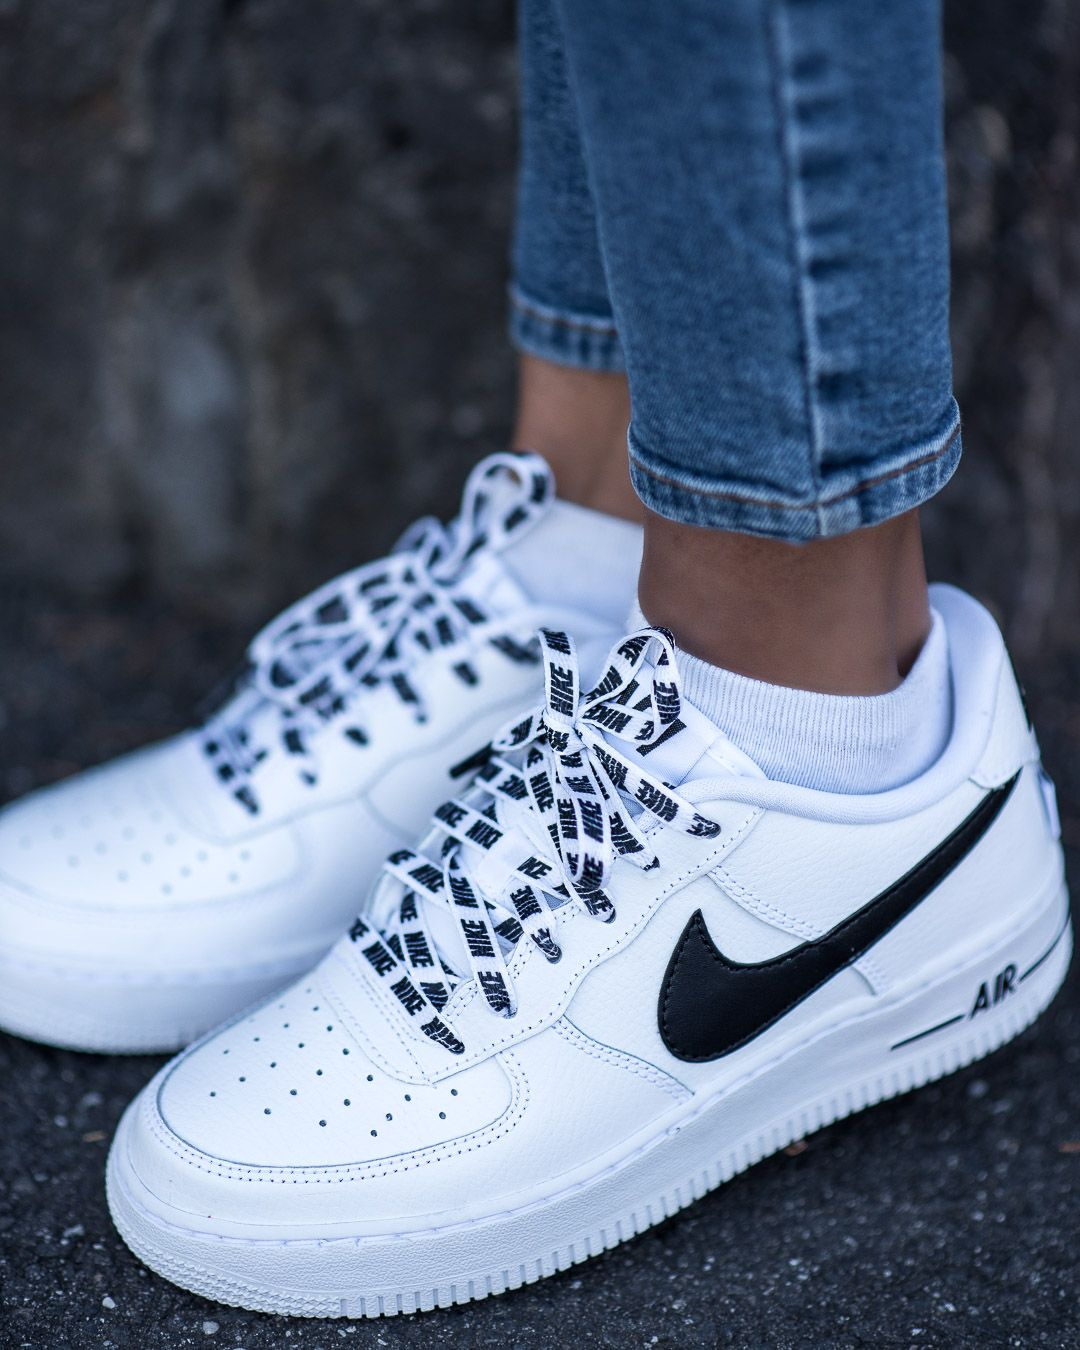 Nike Air Force 1 Shoes Nike Airforce 1: Sneakers of the Month | Sapatos, Sapatilhas nike ...